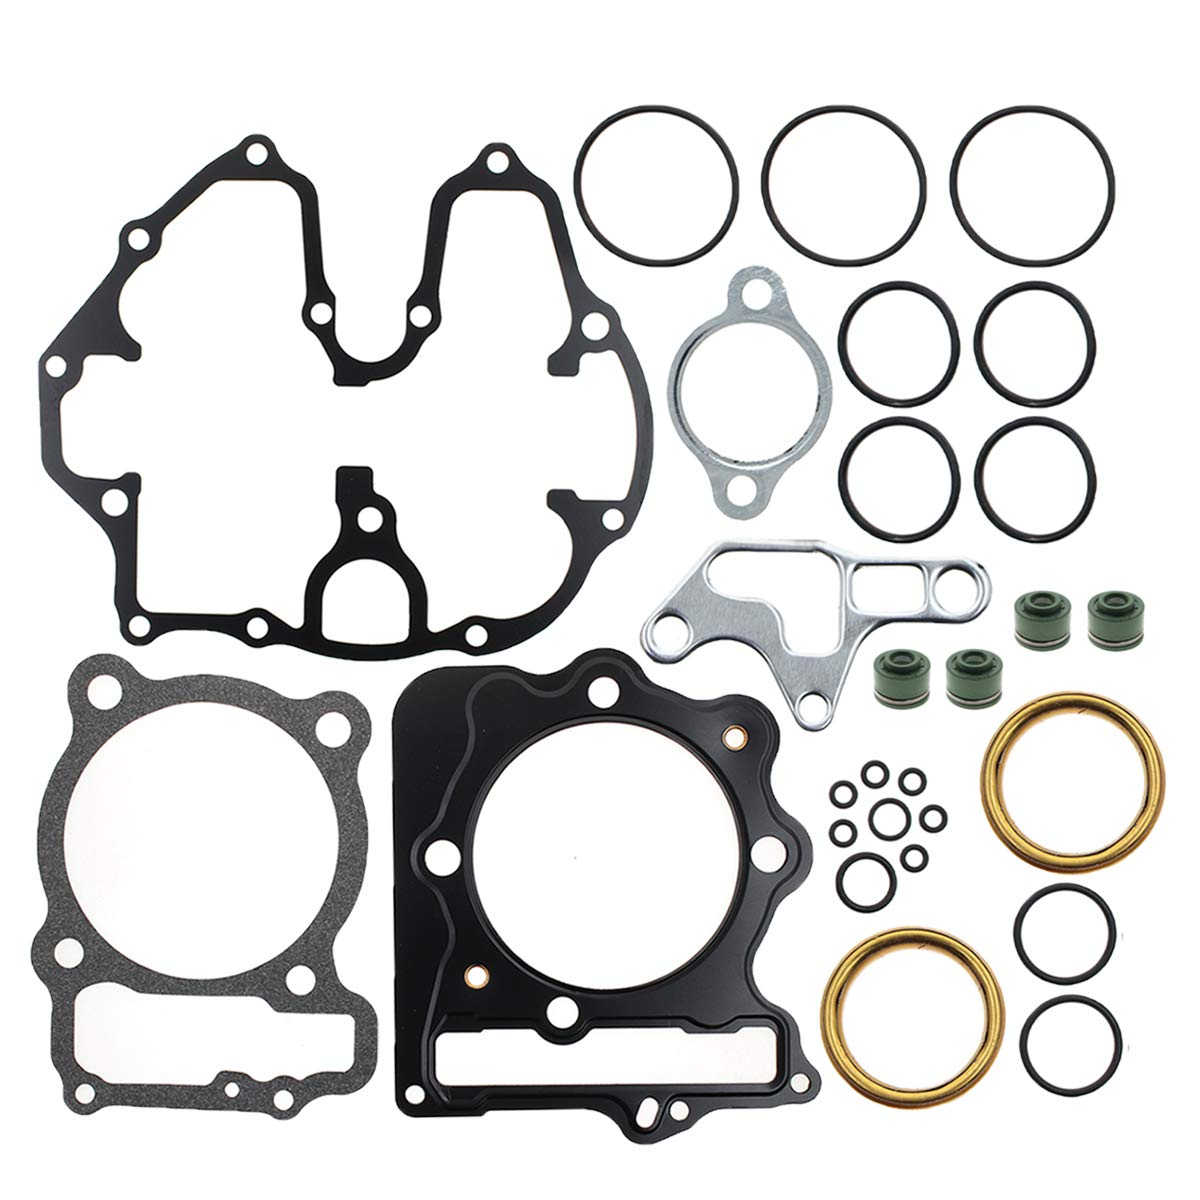 Complete Engine Top End Rebuild Gasket Kit For Honda TRX400EX TRX 400EX 400 EX